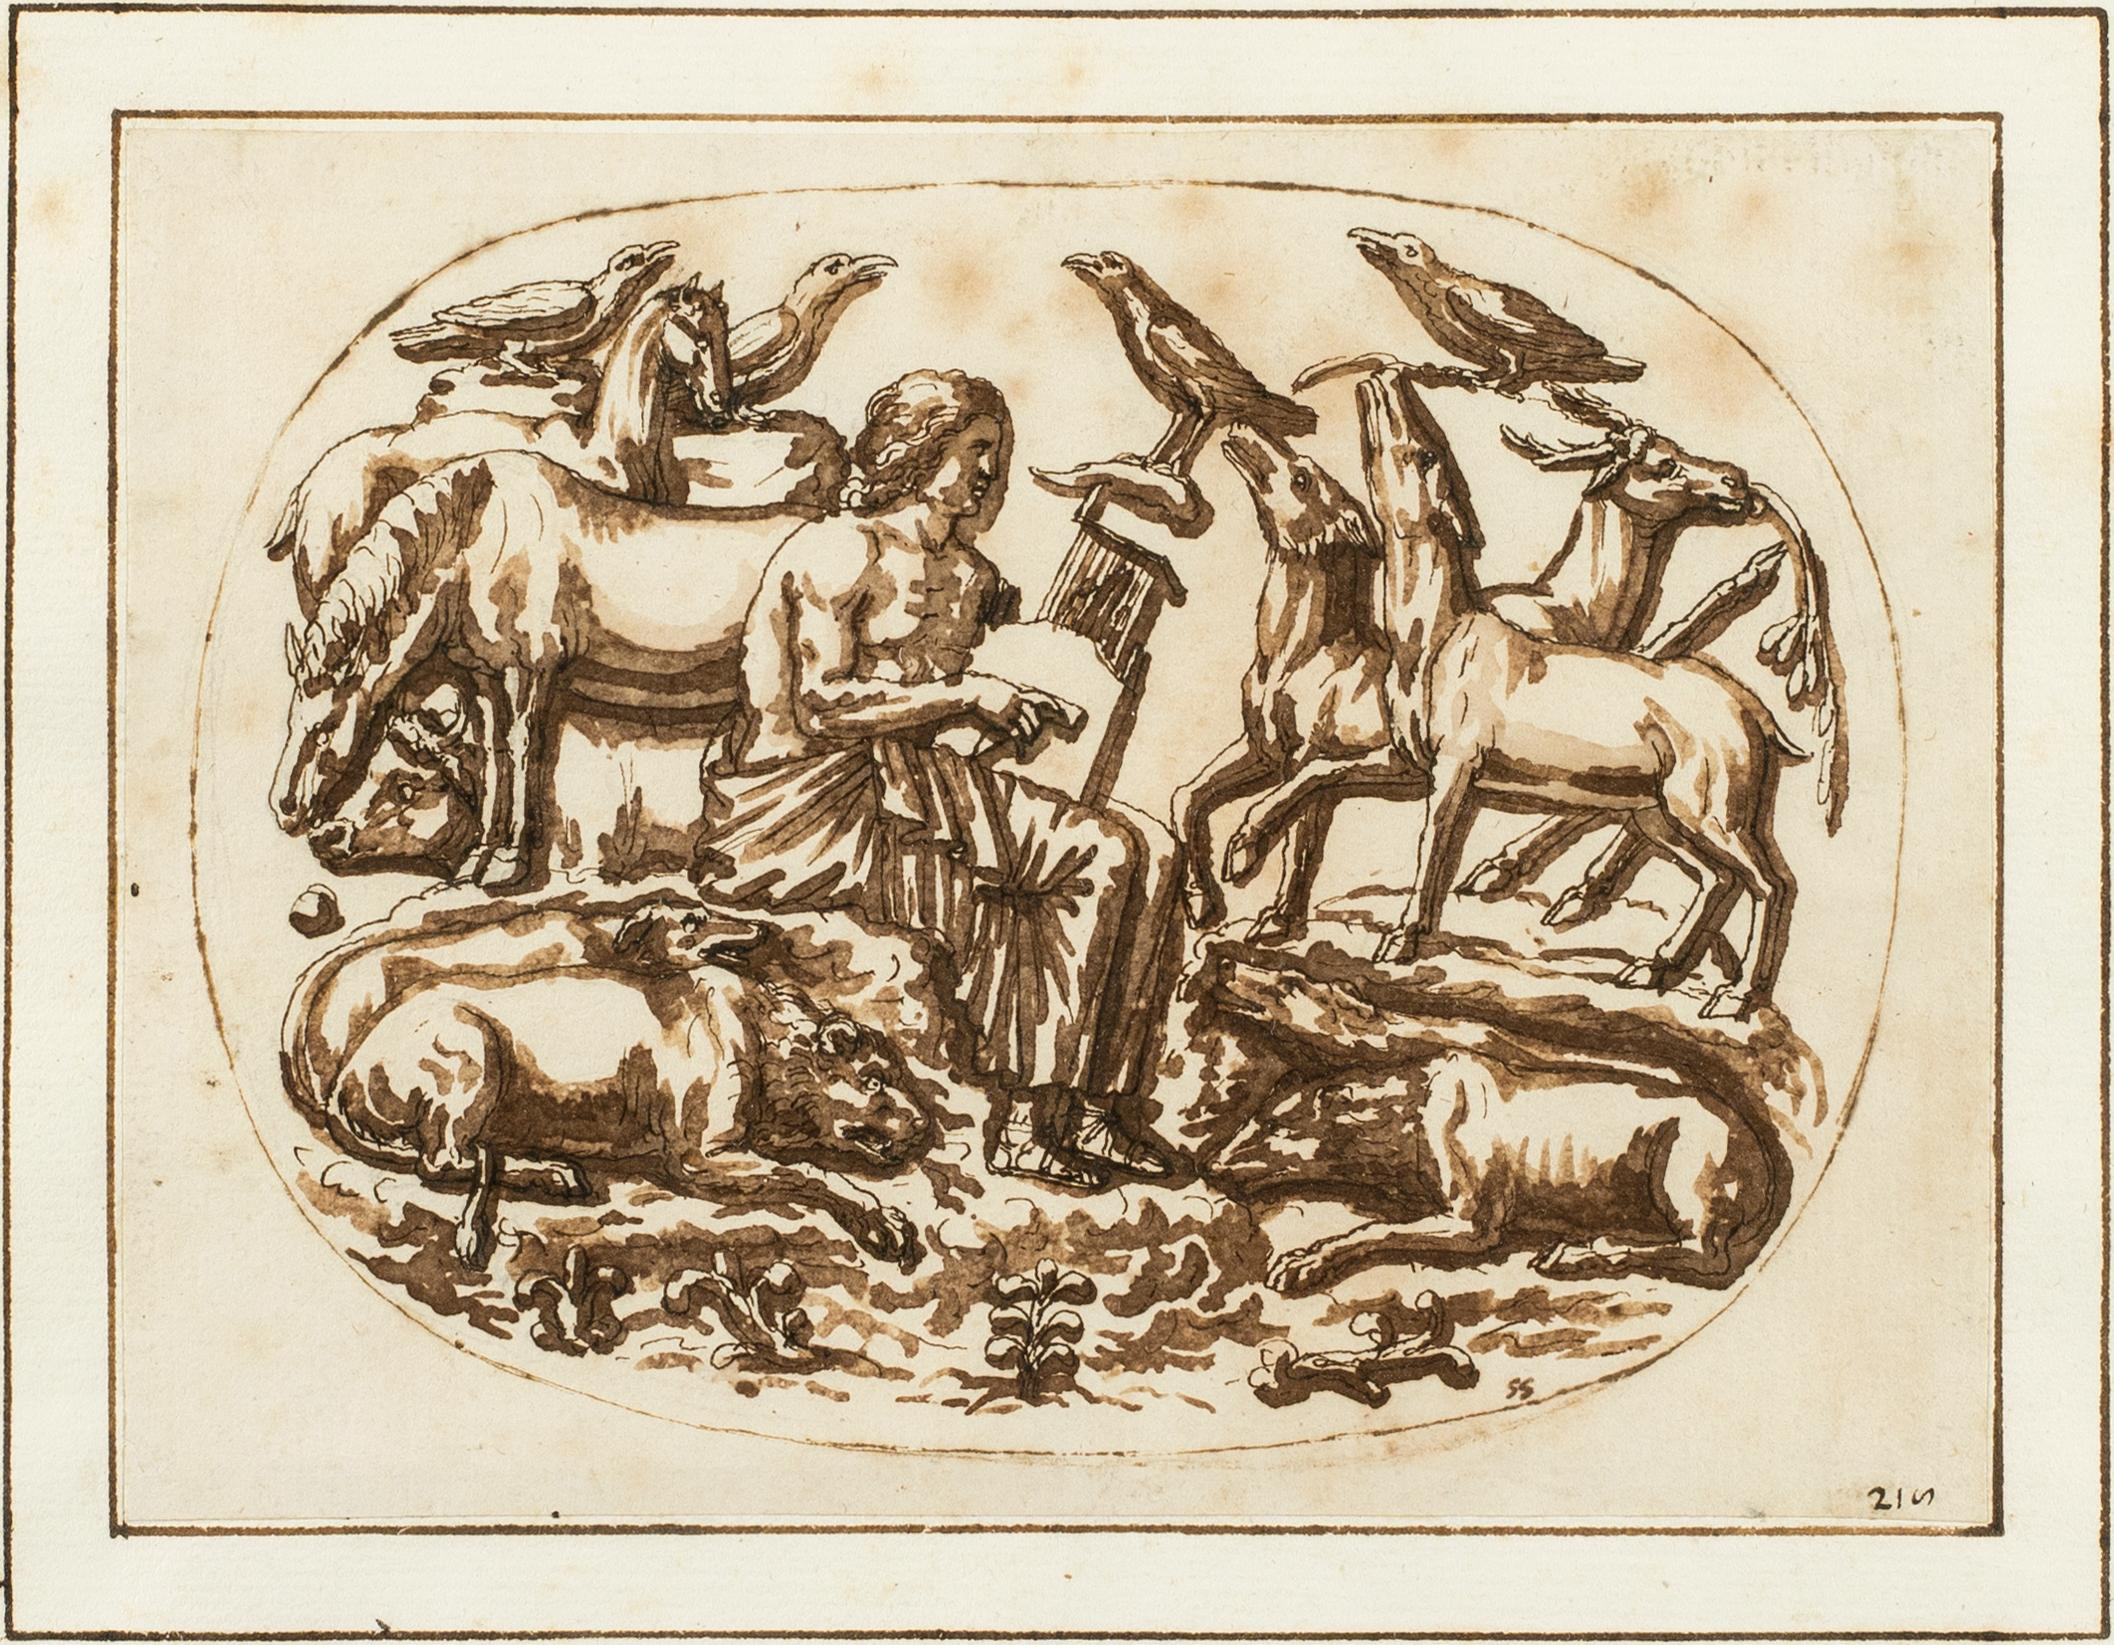 Orpheus and the Animals, A Study after an Ancient Bas-Relief